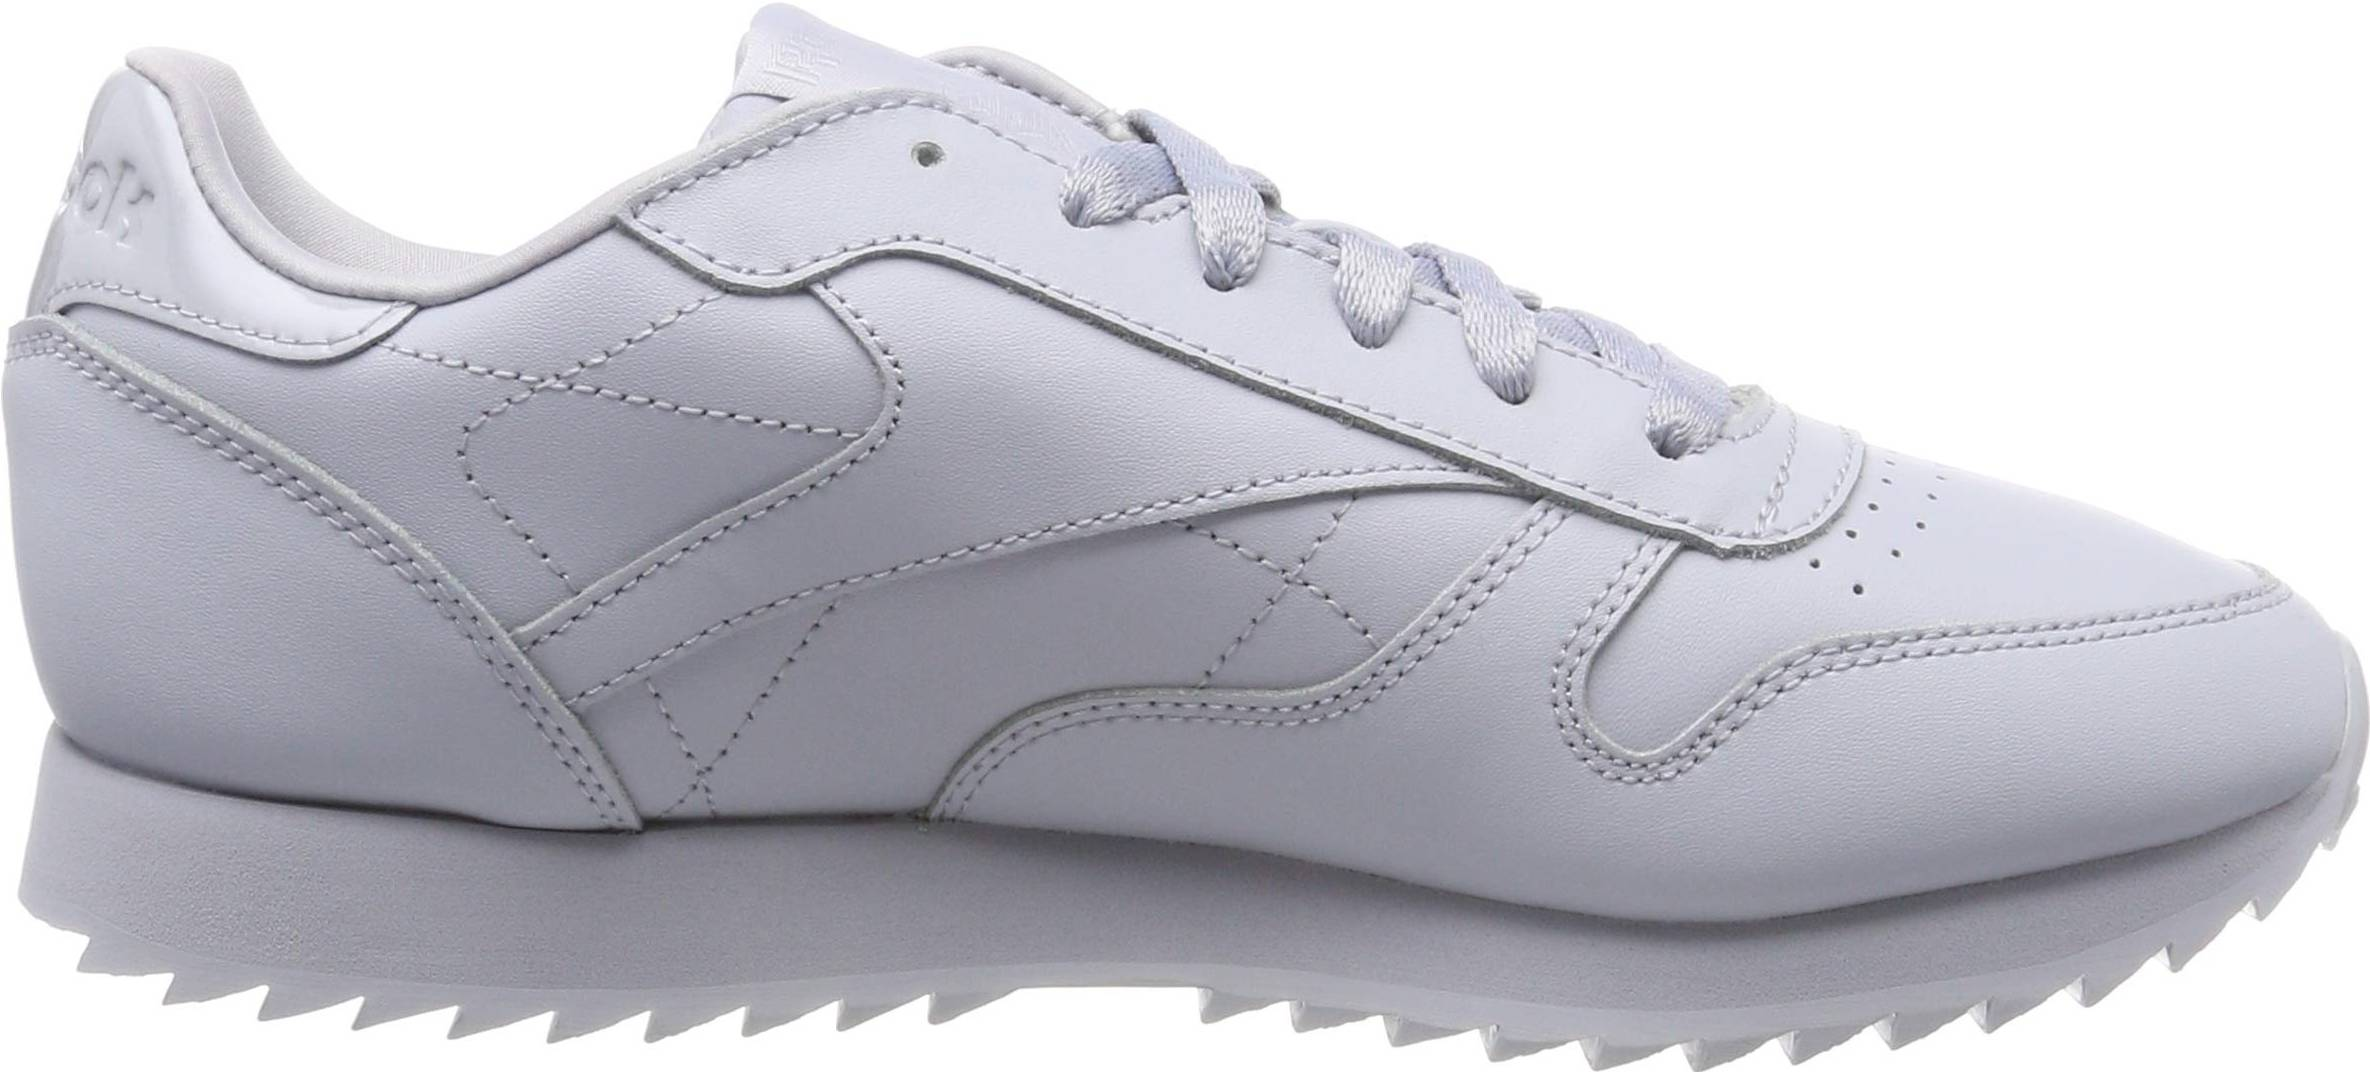 reebok classic leather running shoes womens